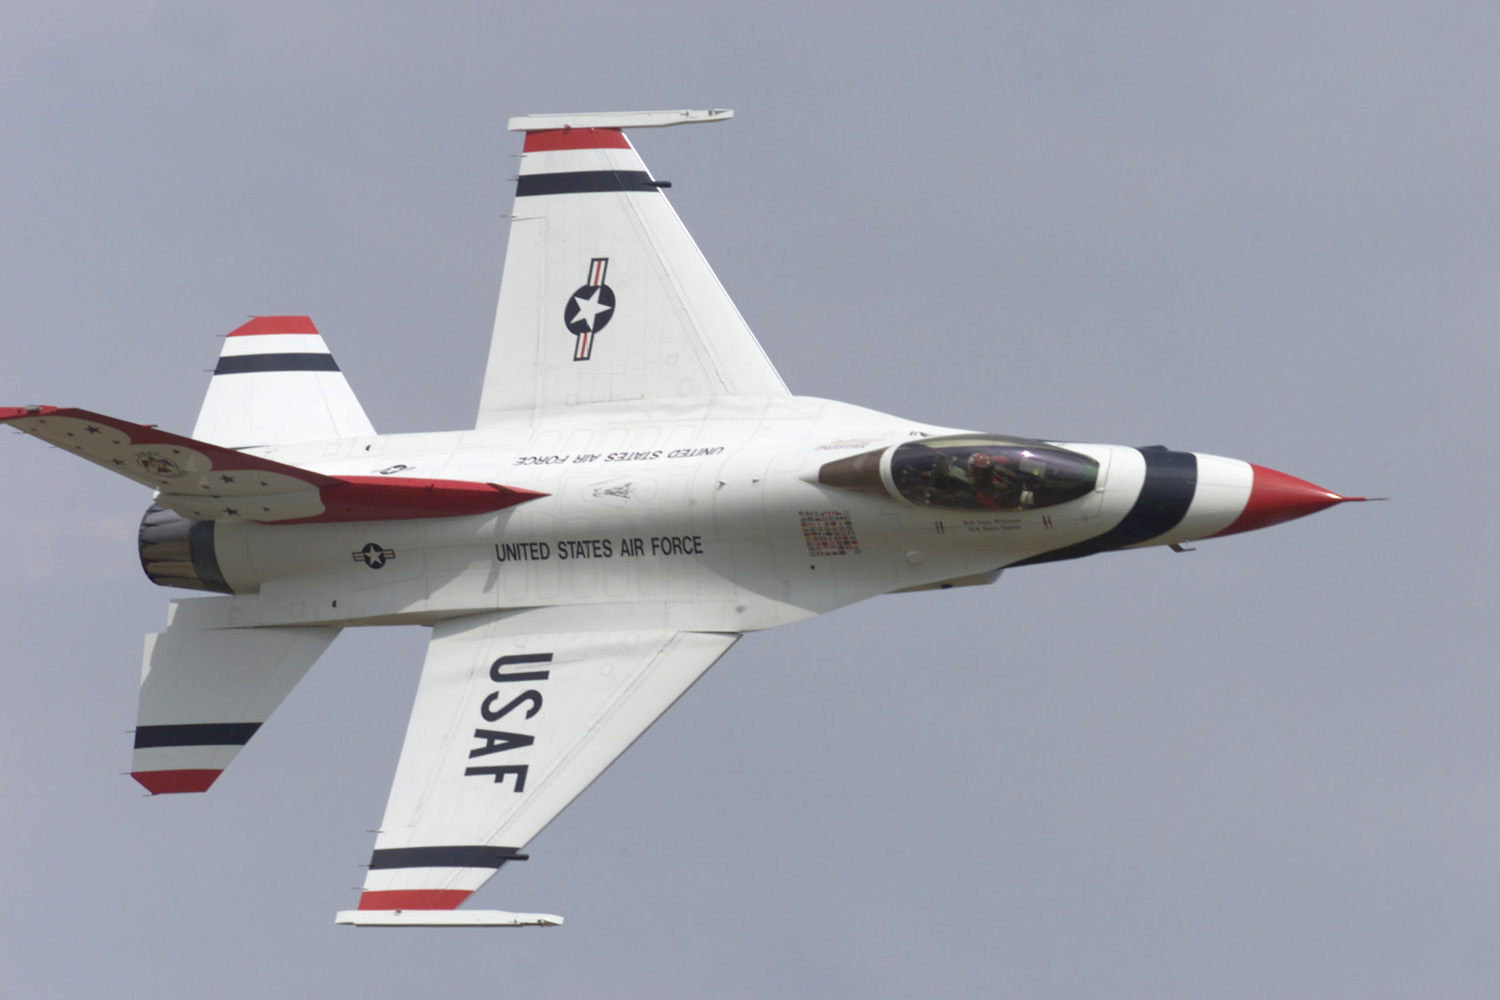 16 thunderbirds 5 plane - photo #16